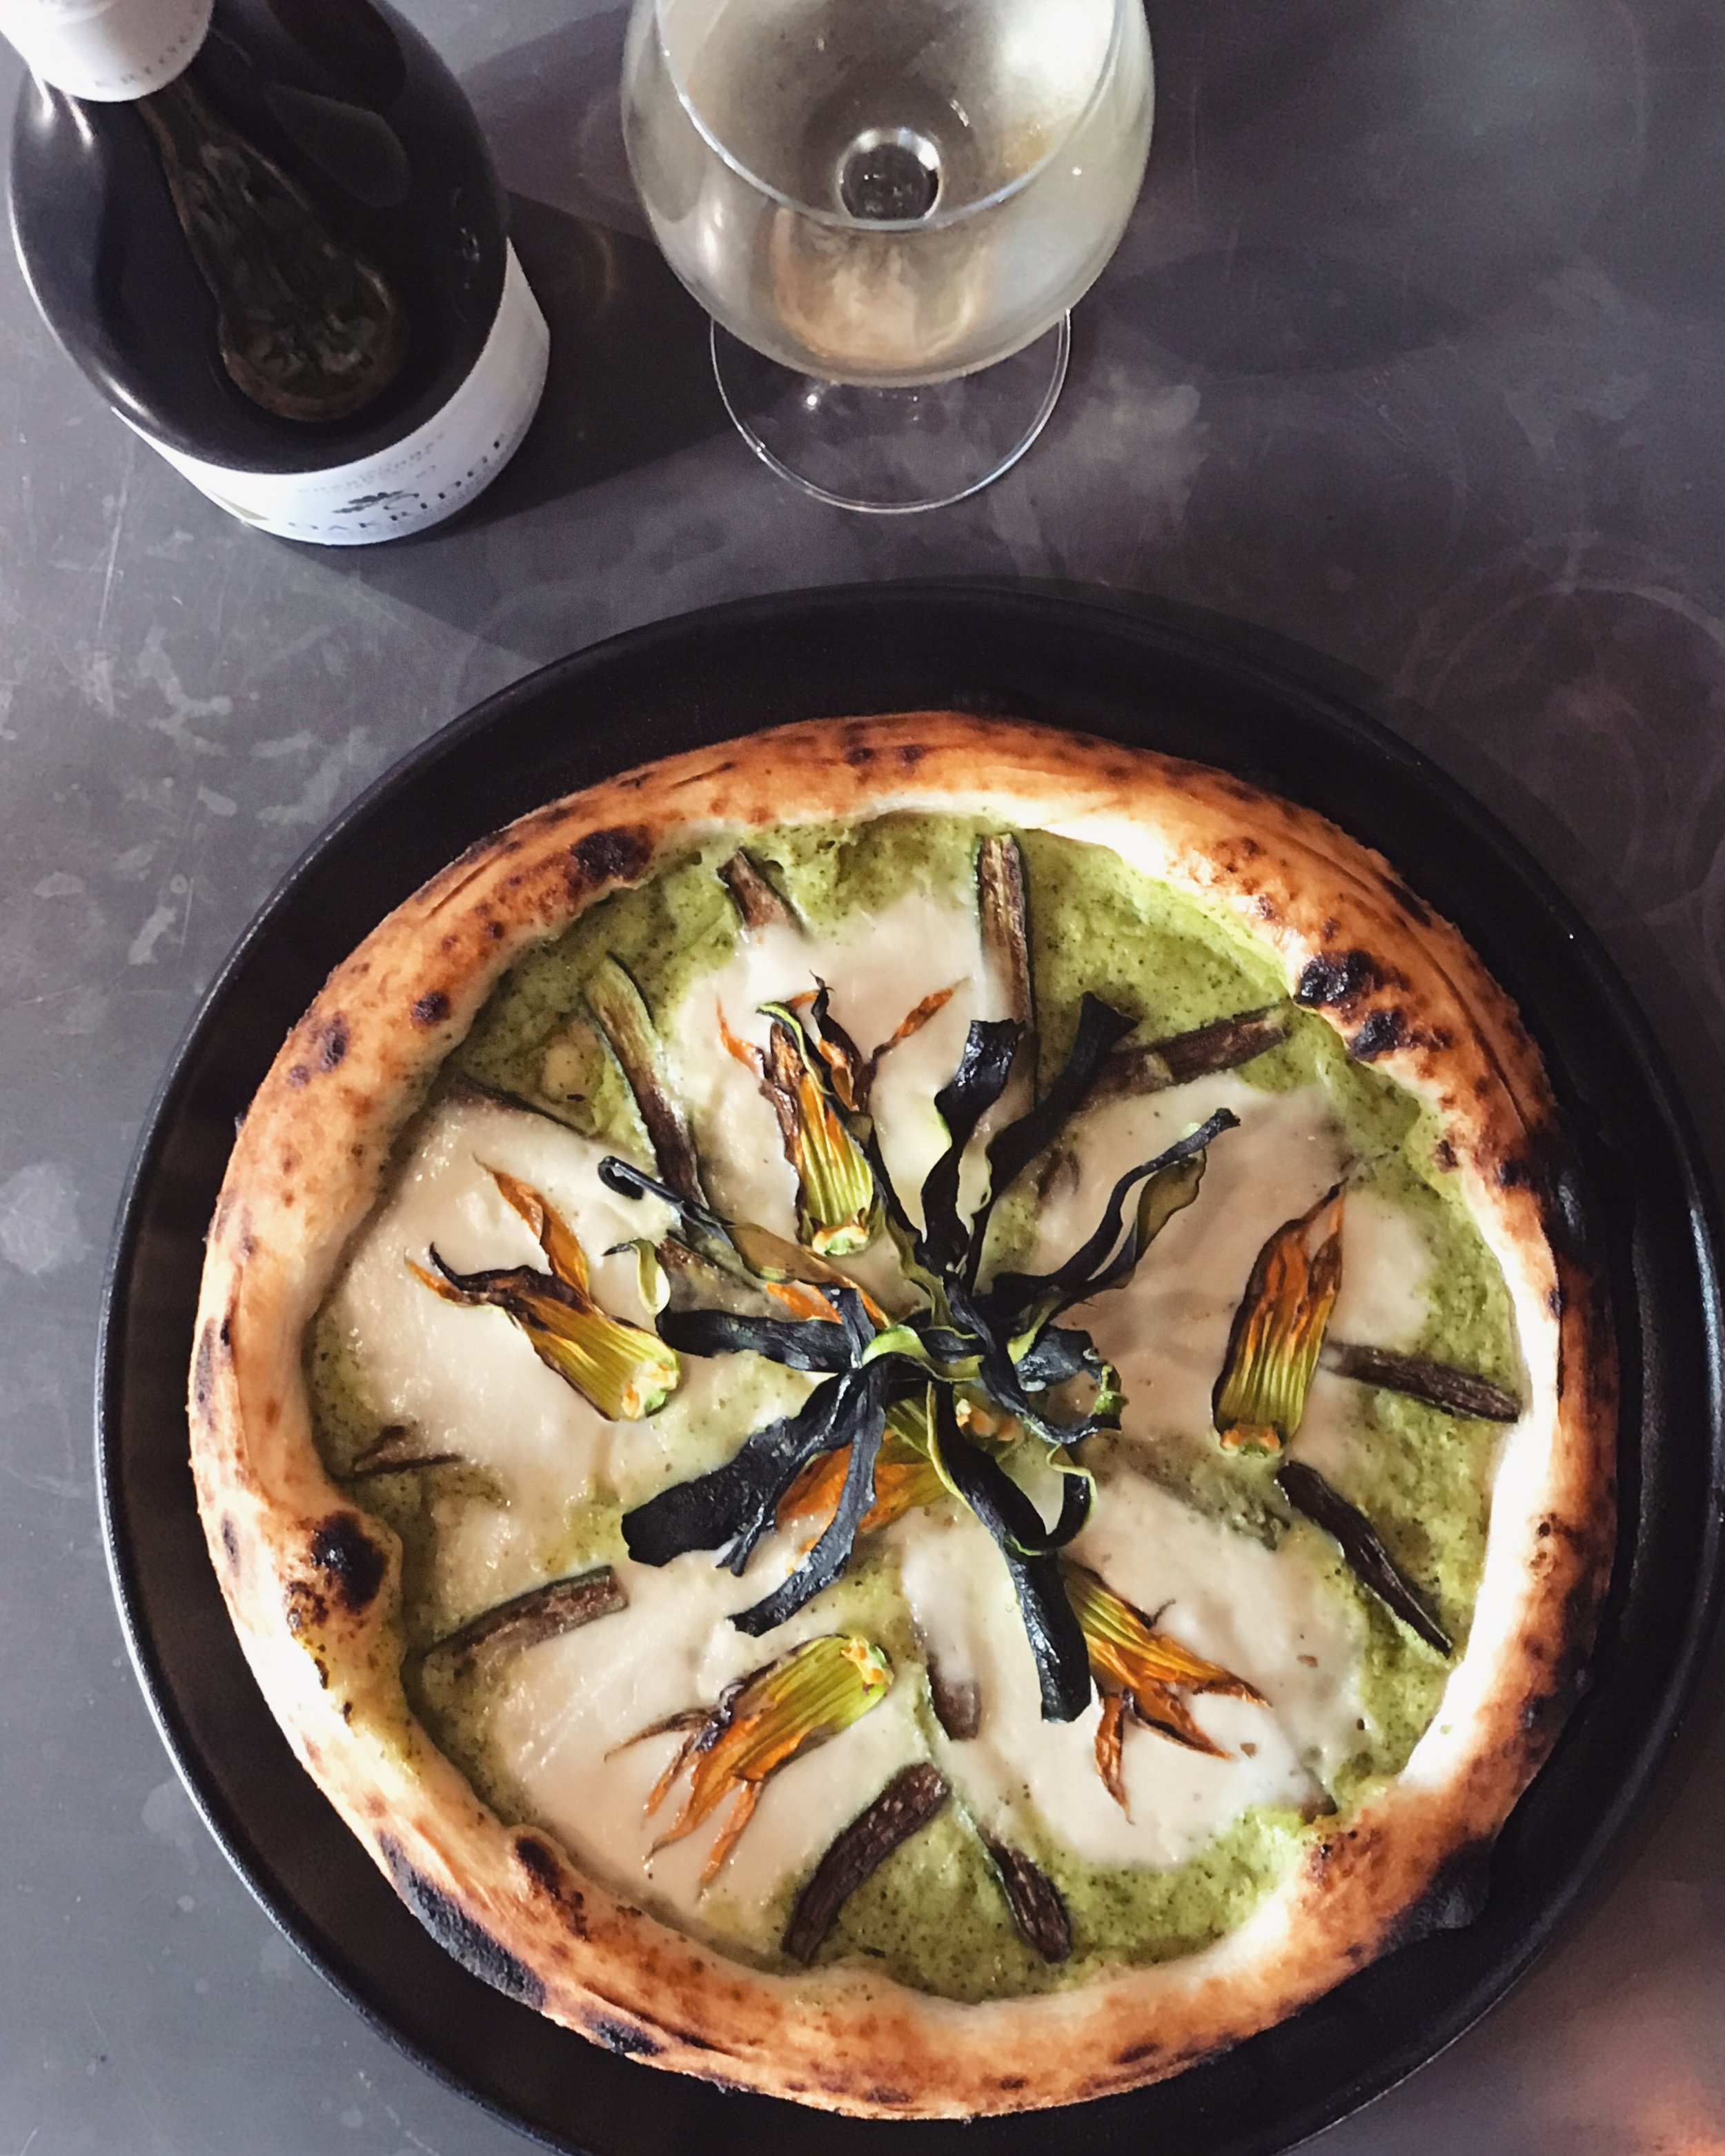 13-19 March - Grilled zucchini and zucchini flowers on a base of creamy zucchini and Fiordilatte mozzarella, topped with crunchy sun-dried zucchini.Best enjoyed with a glass of Oakridge Chardonnay (Yarra Valley, VIC).